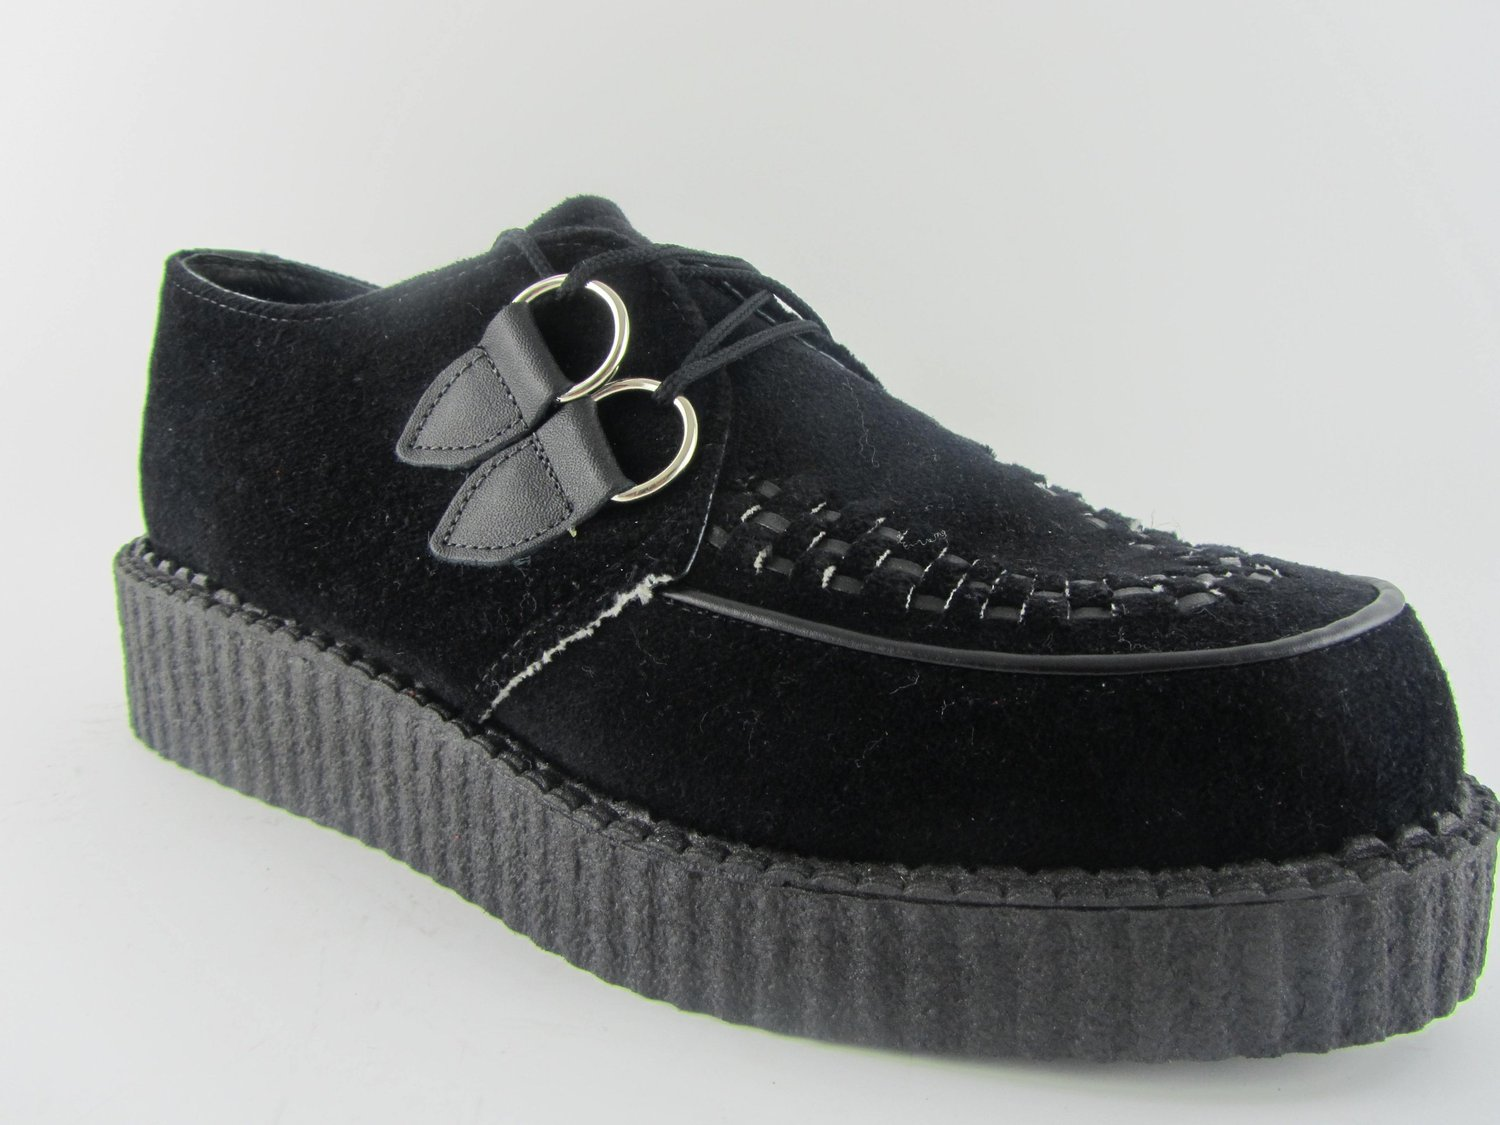 fa7e389c940b4 CREEPERS BLACK VELVET Low Thin Sole Retro Brothel Creeper Shoes Round Toe D  Ring: Amazon.co.uk: Shoes & Bags